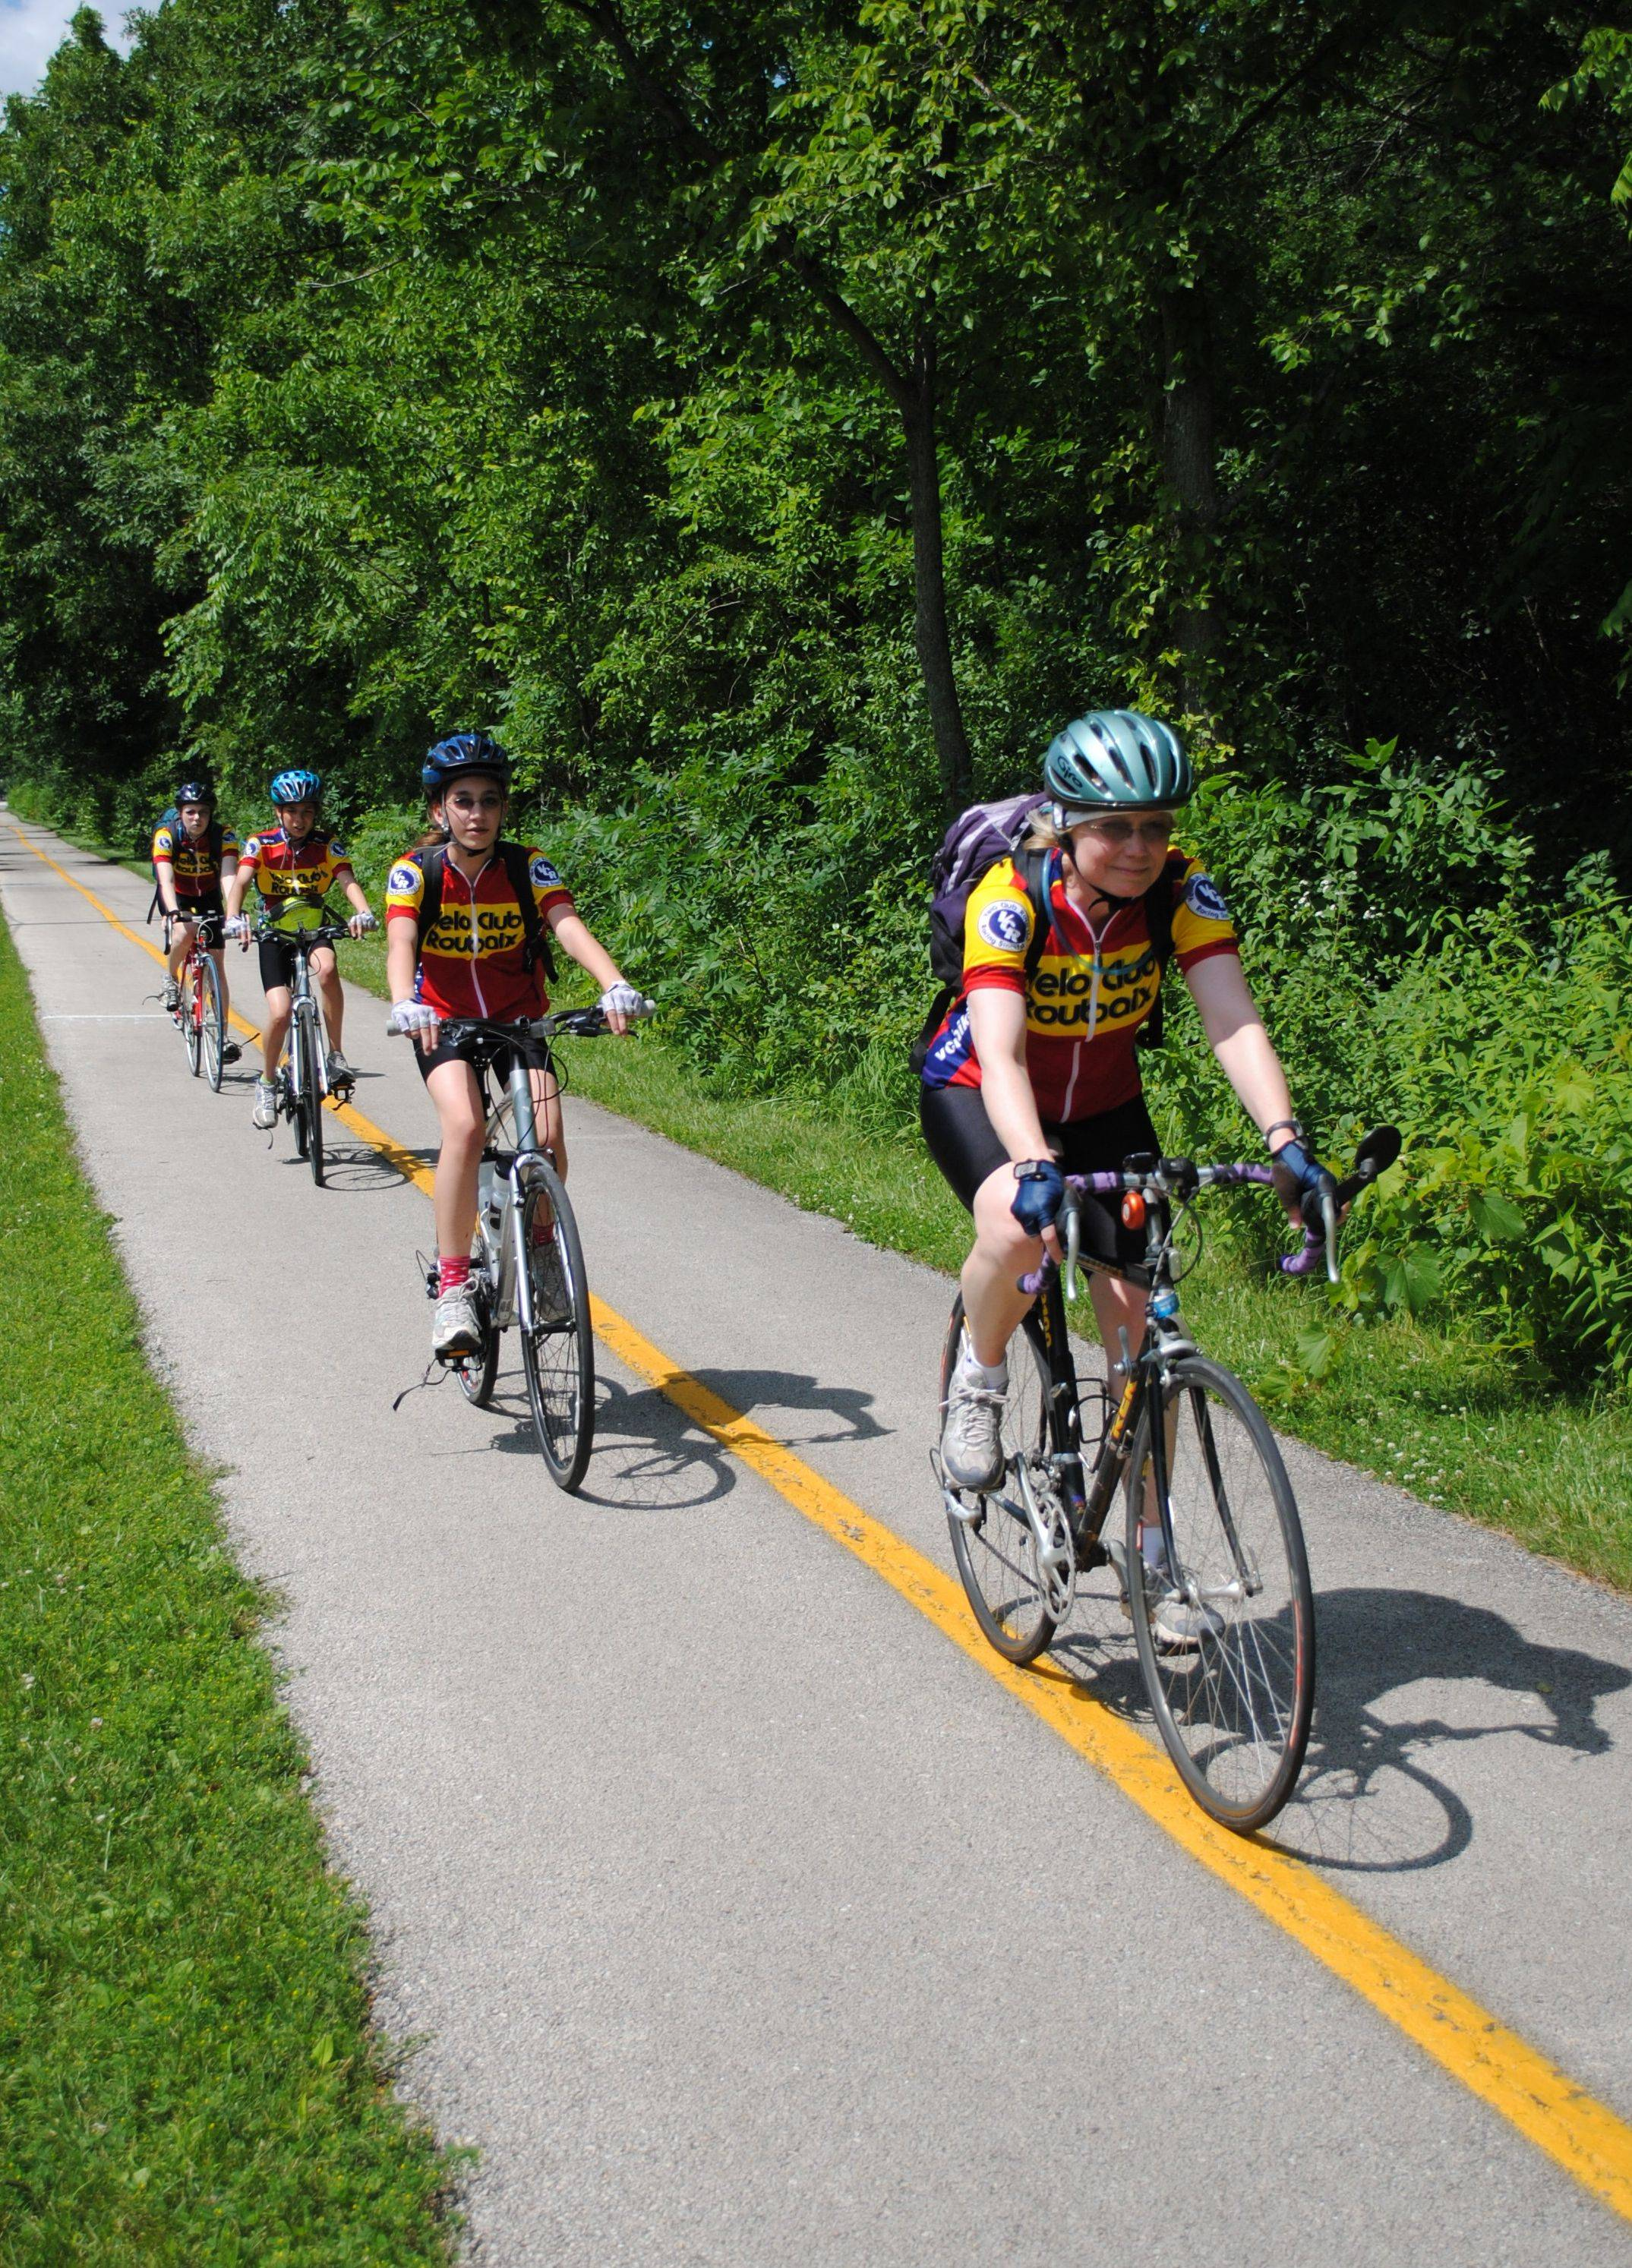 The Chicago area has miles and miles of trails for cycling enthusiasts to enjoy.